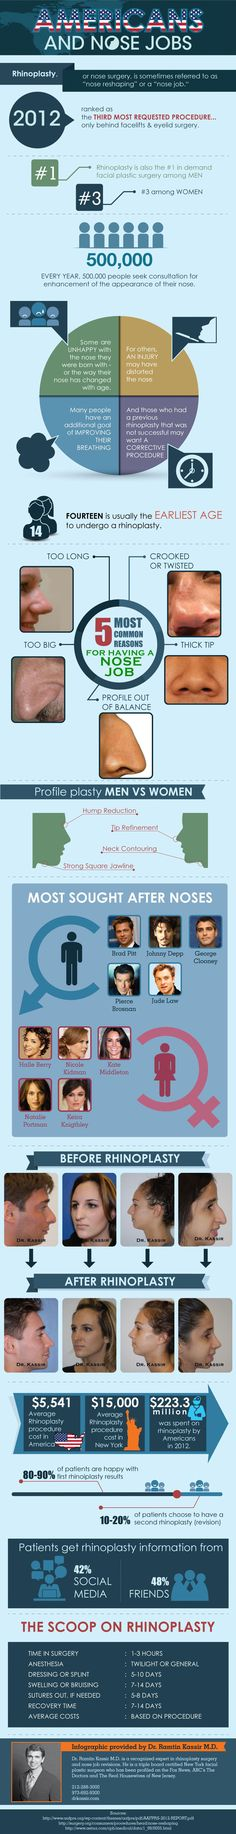 Americans and Nose Jobs